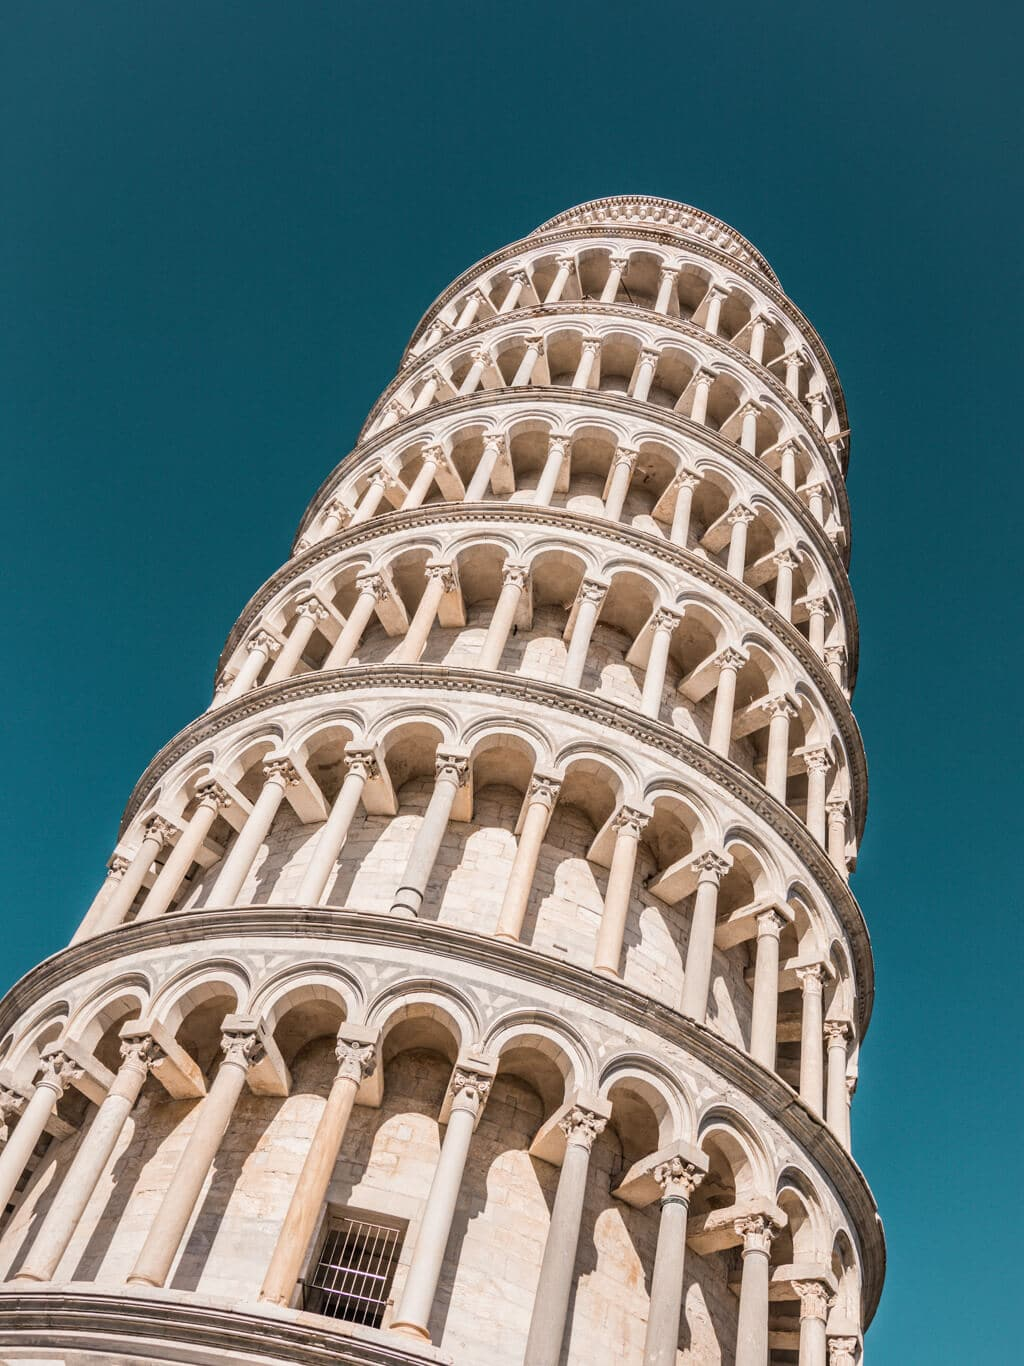 Pisa || A Guide For Planning A Trip To Tuscany, Italy - Things to do, including food & restaurants tips, wineries, and road trip tips